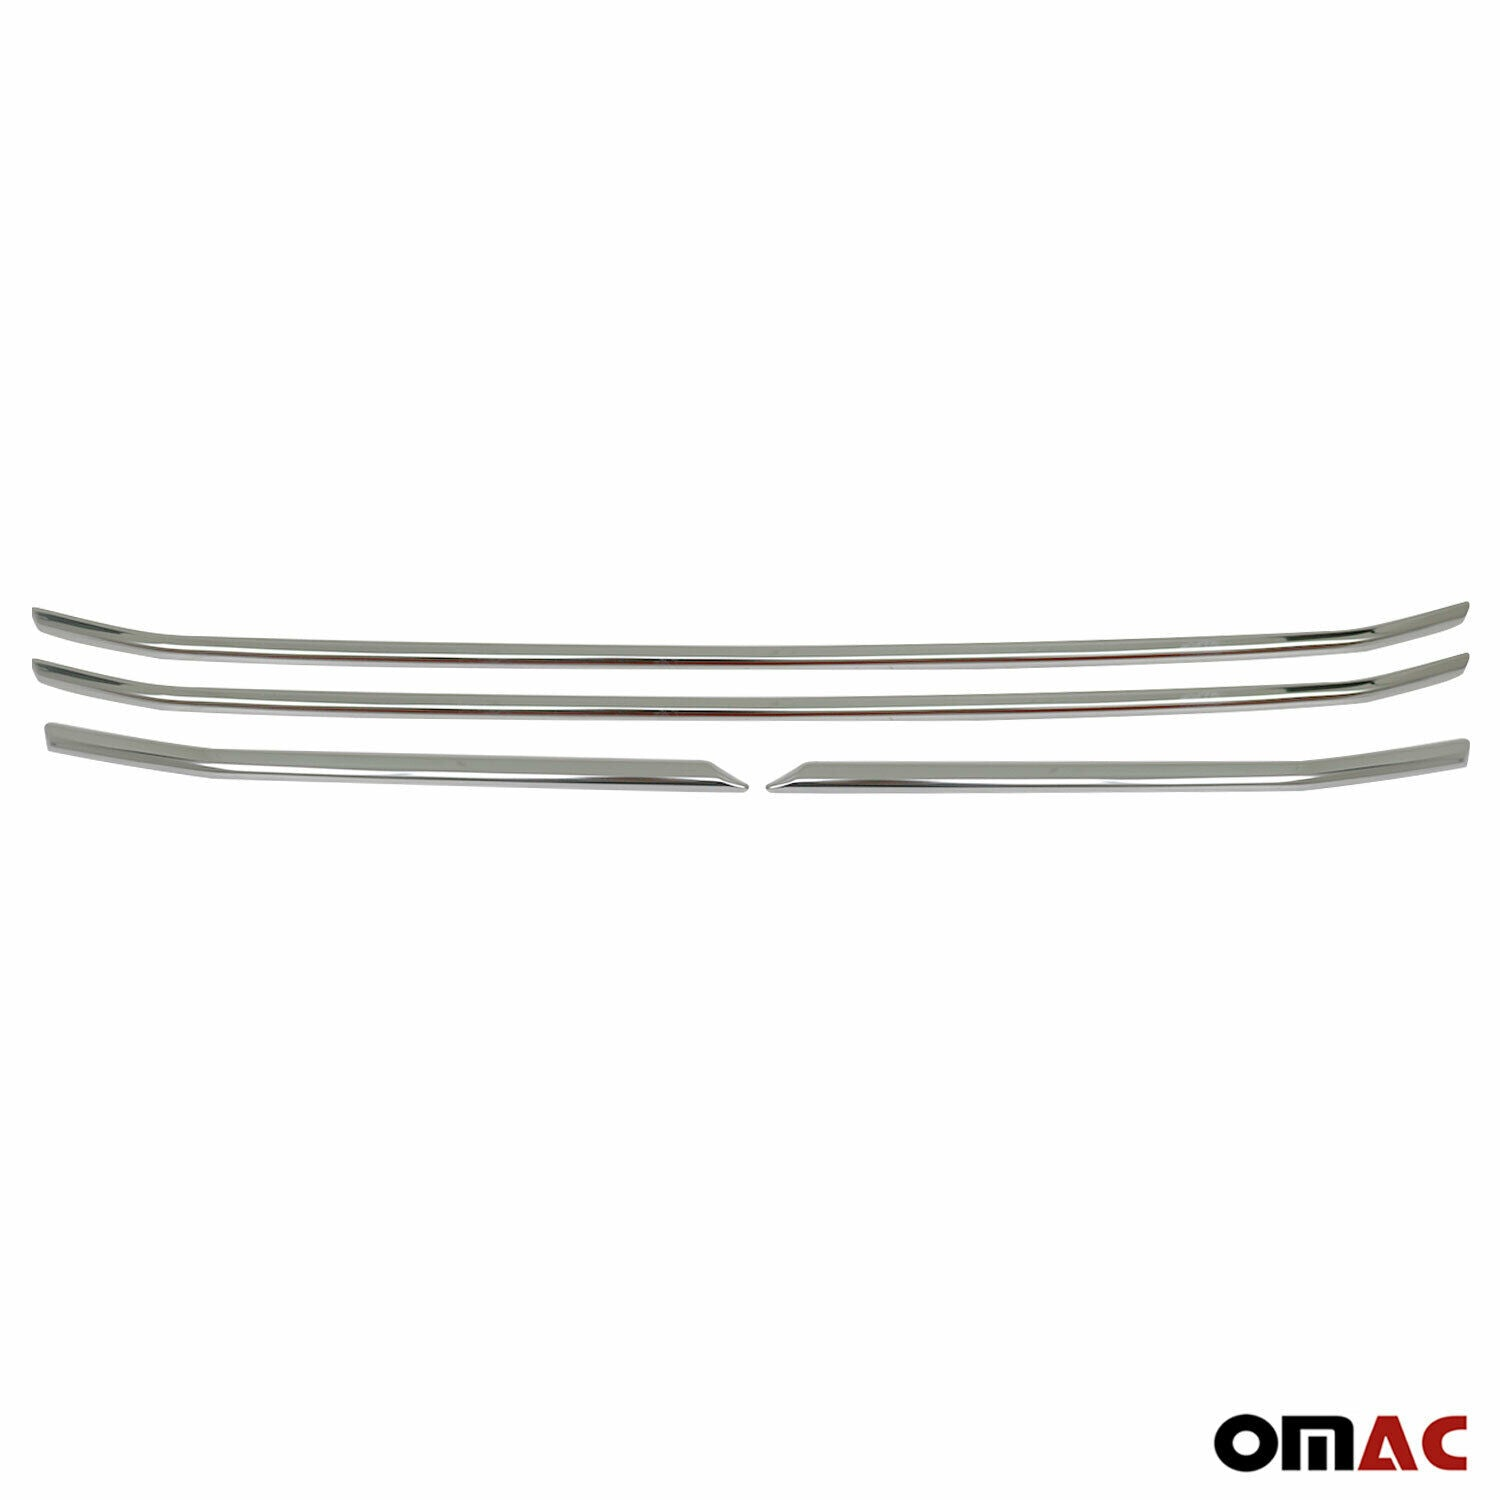 Chrome Front Grill Trim Stainless Steel 4 Pcs For Ford Transit 2019-2021